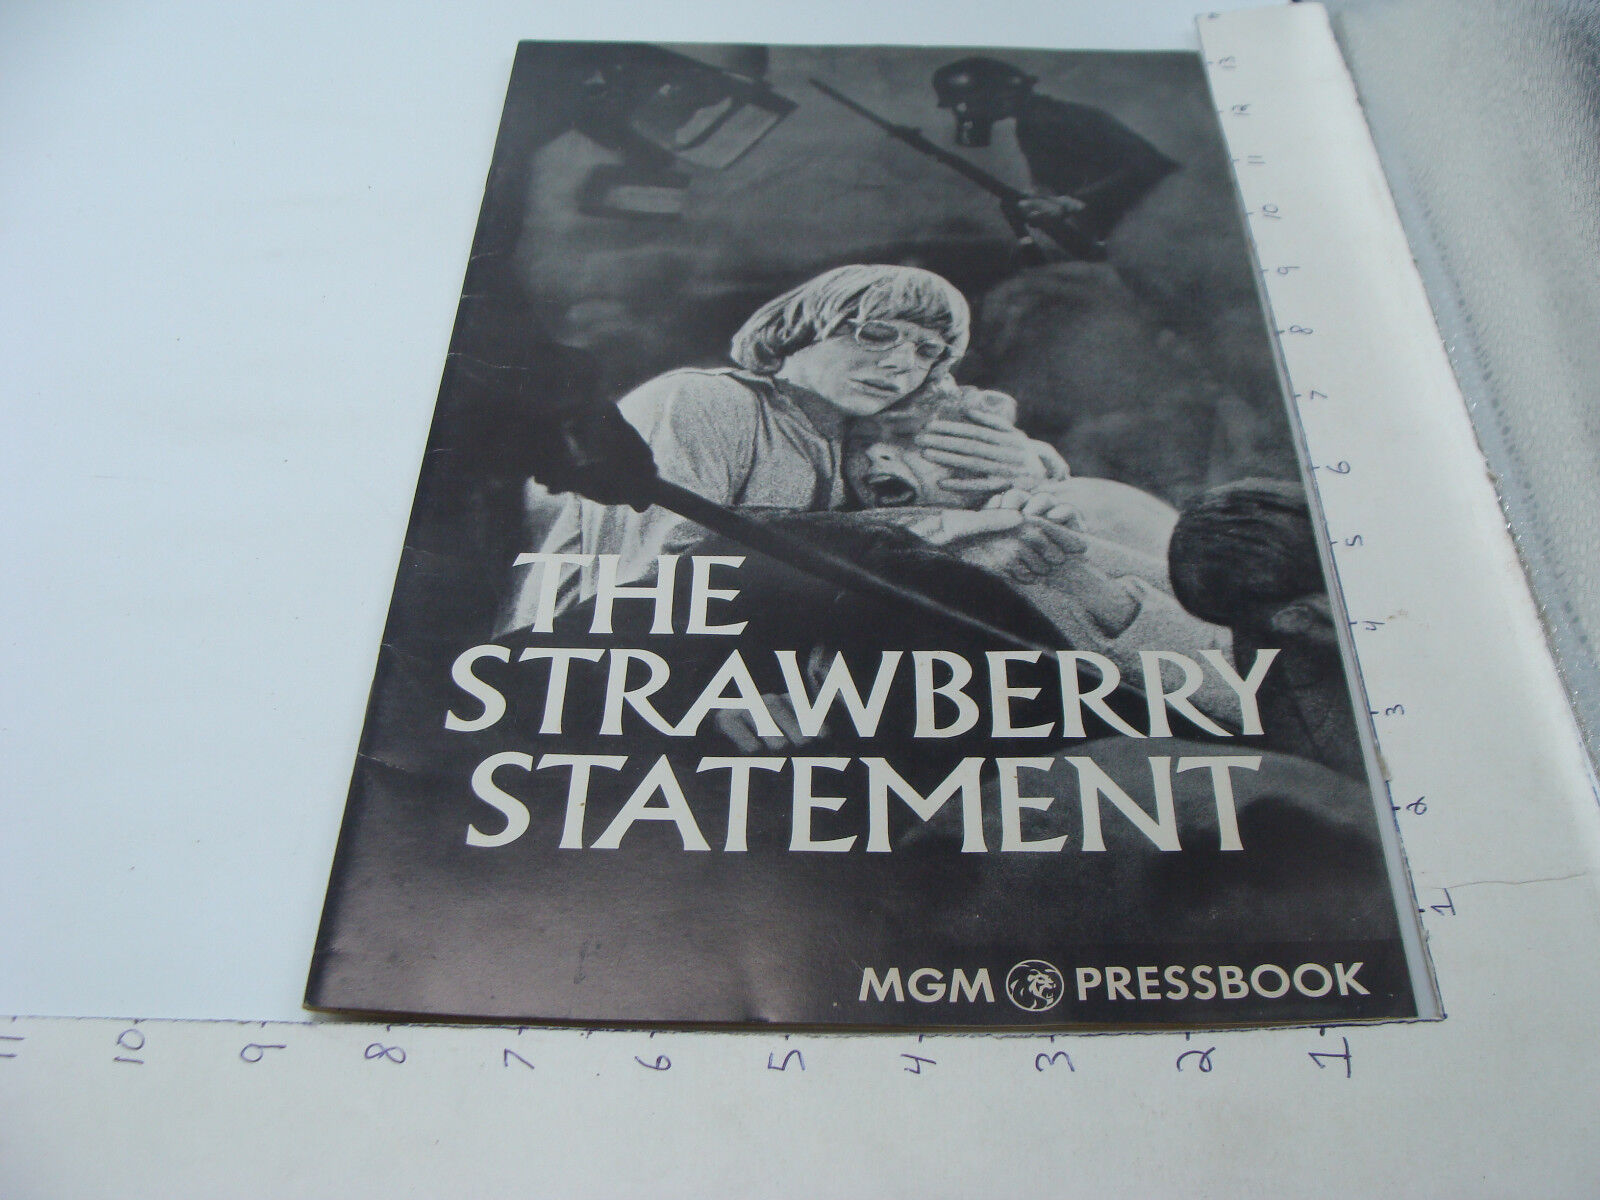 Orig MGM PRESSBOOK - THE STRAWBERRY STATEMENT - not complete